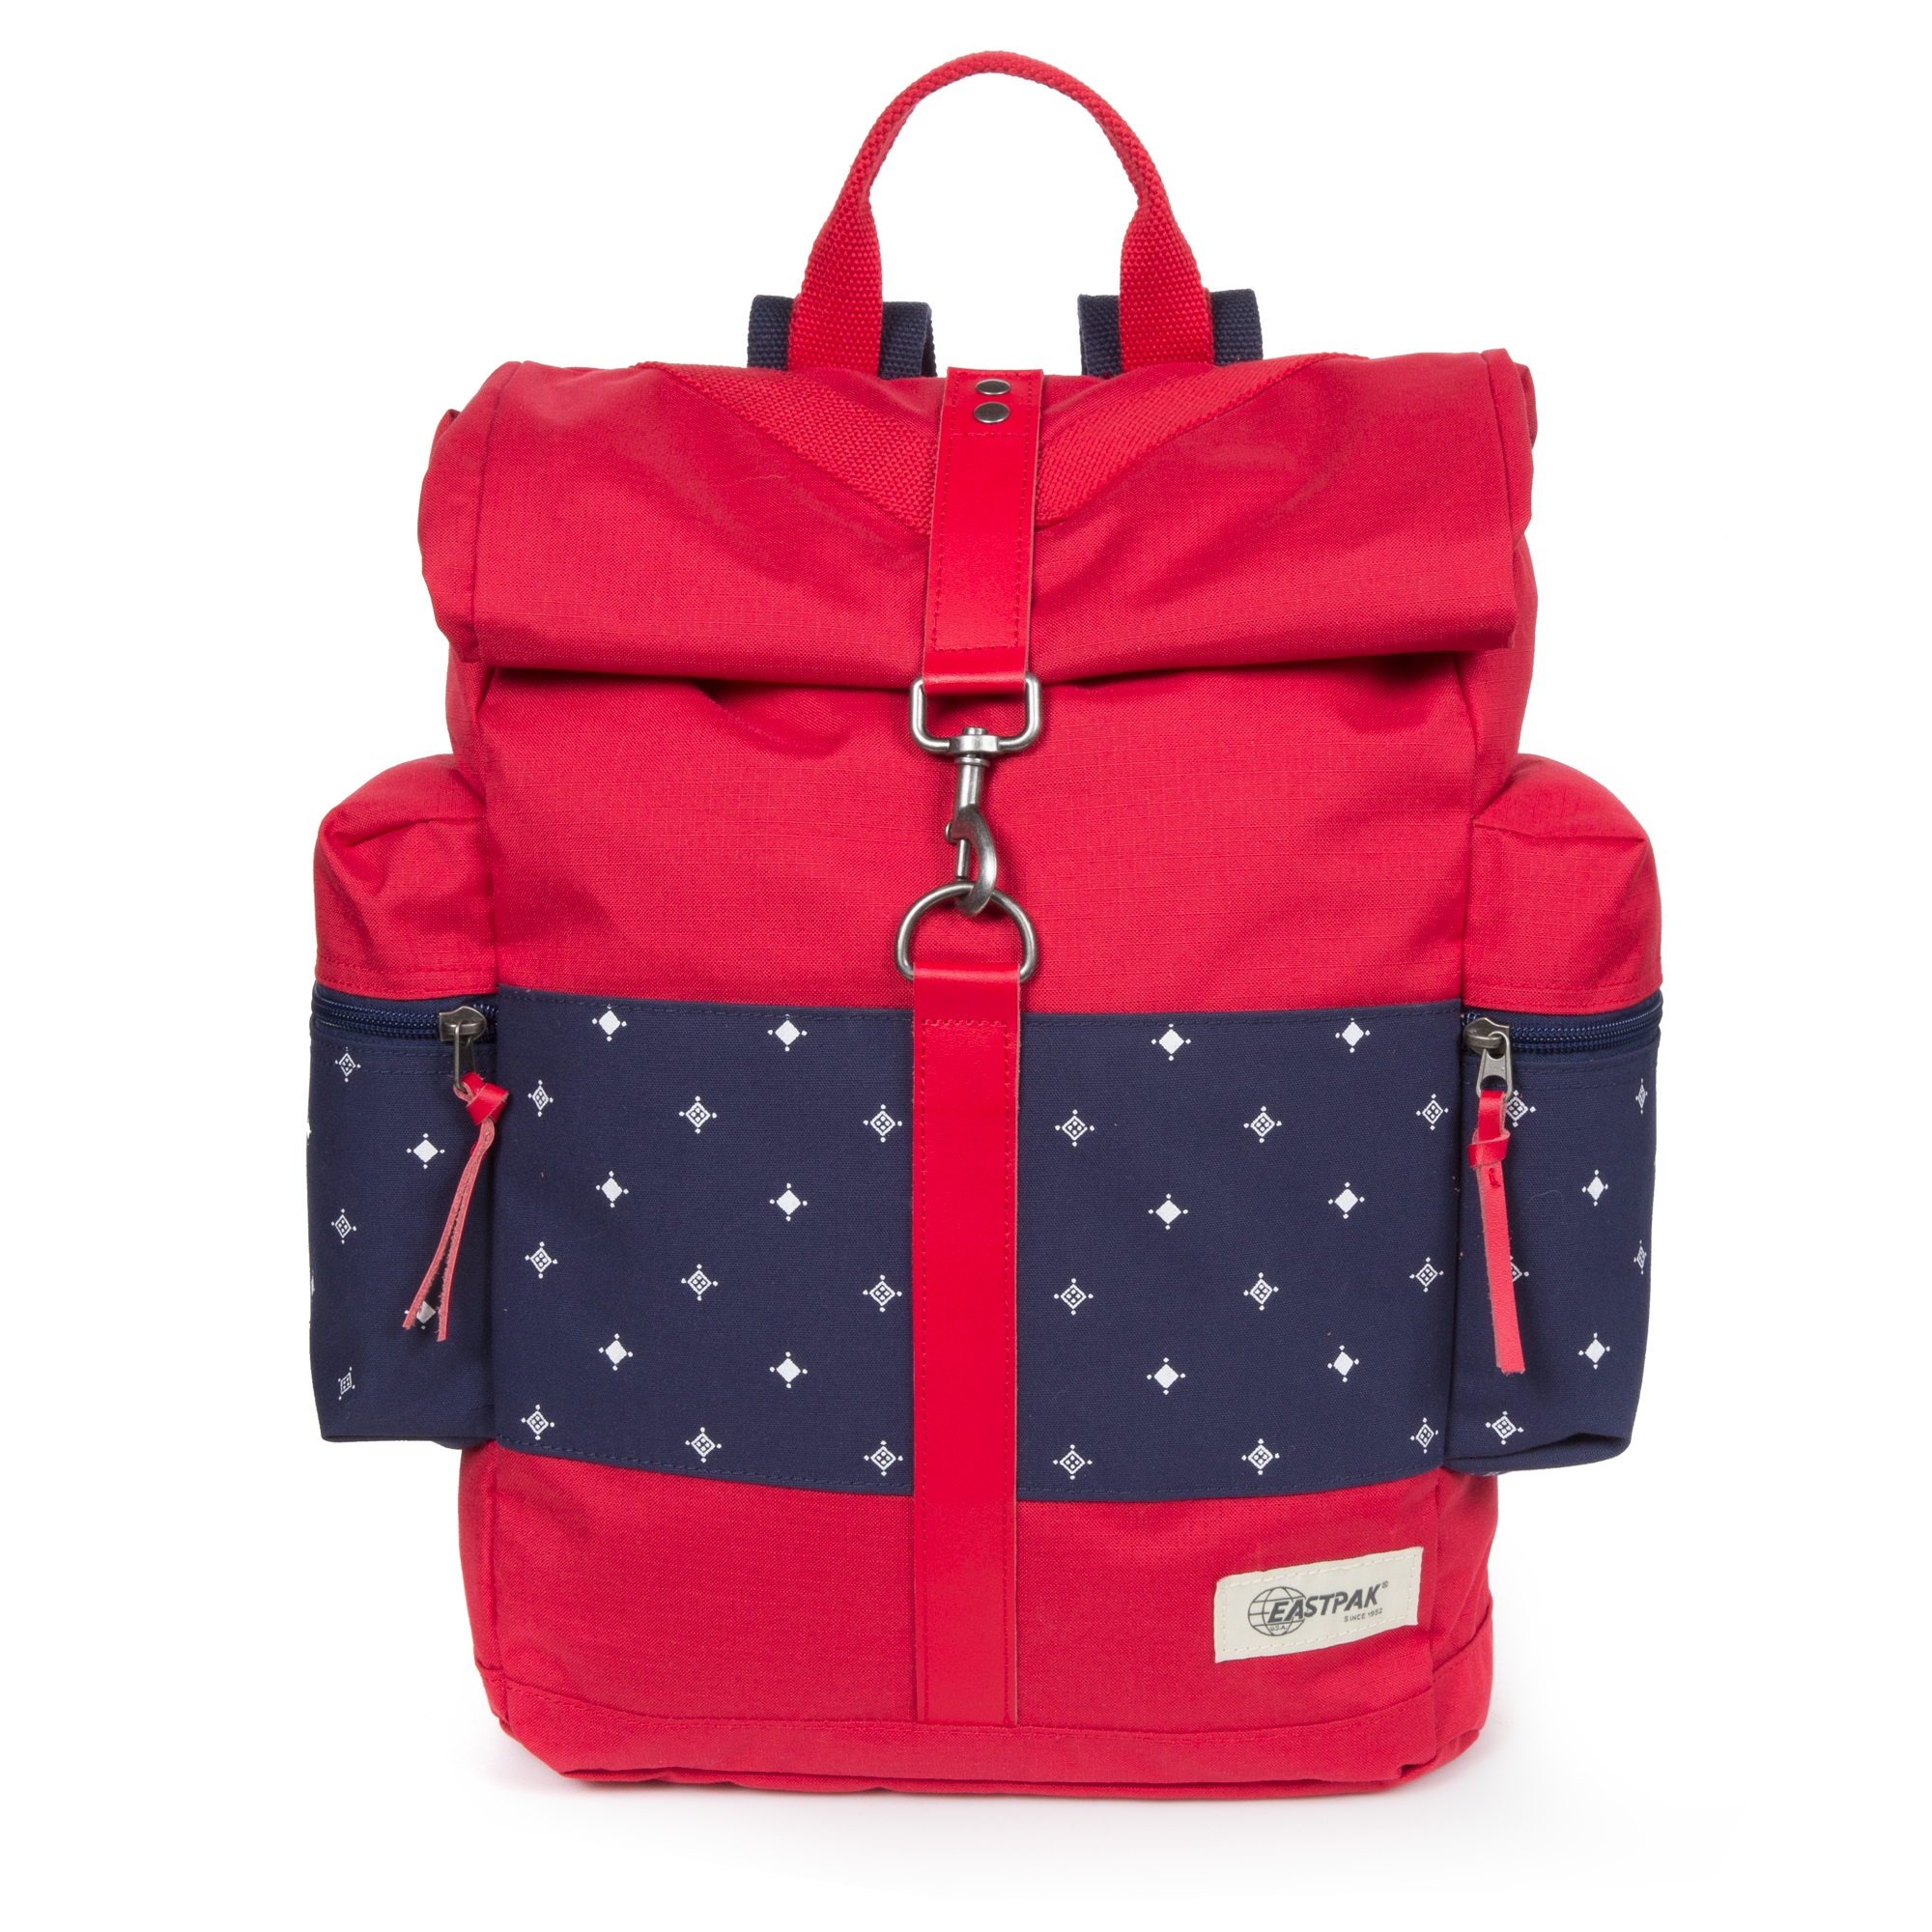 Eastpak_Brisson Out_Red_EK06B_99J_80€